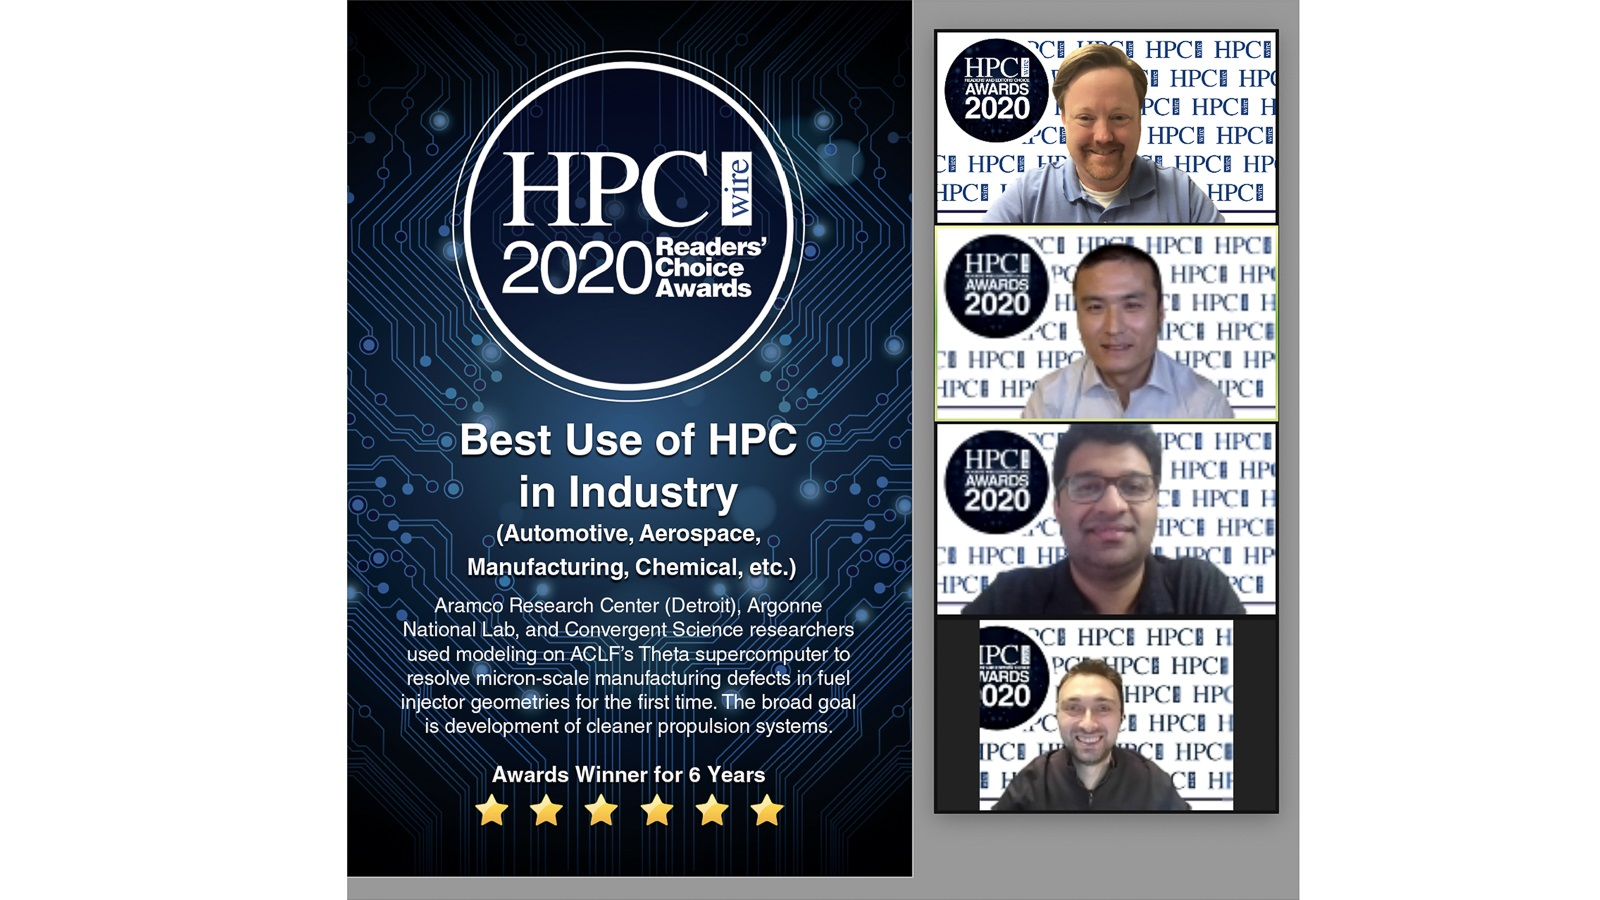 A group of engineers, including Argonne's Sibendu Som and Roberto Torelli, won a Readers' Choice Award for Best Use of HPC in Industry. (Image by HPCwire.)